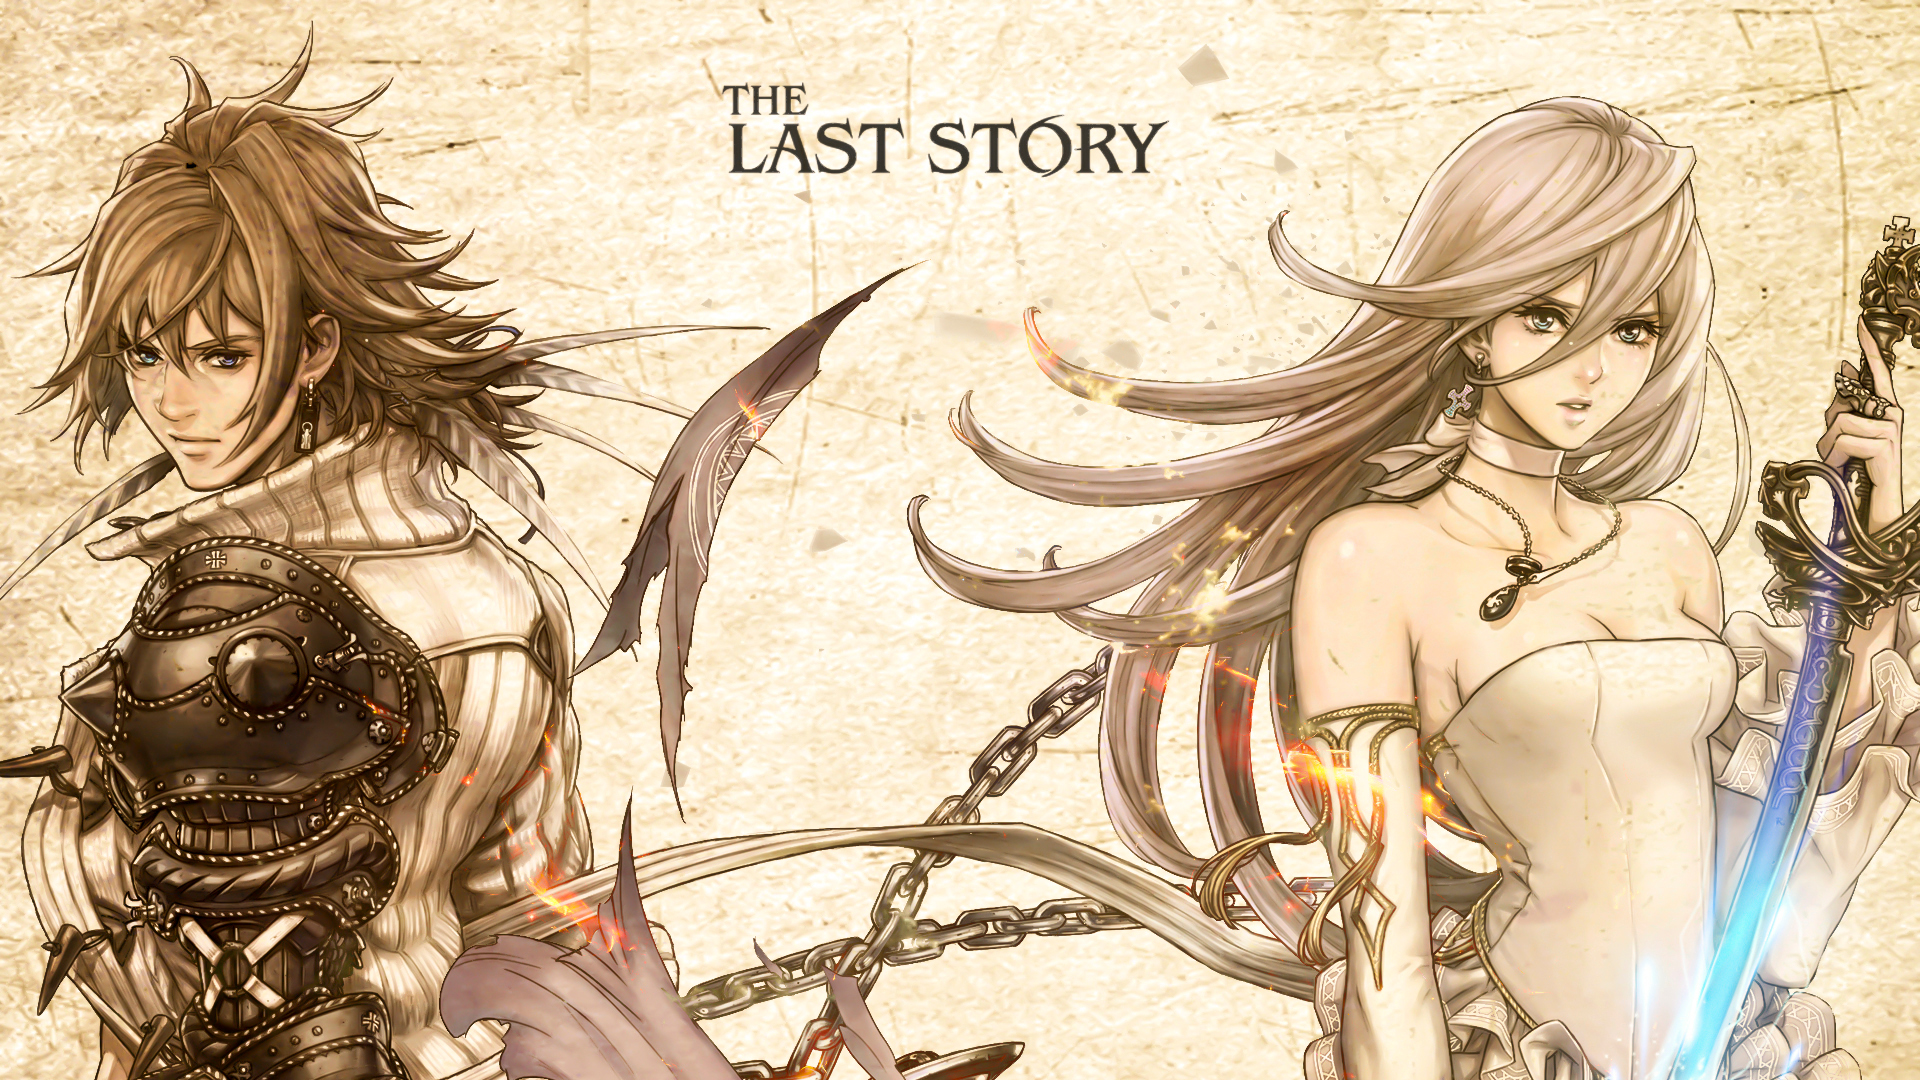 The last story hd wallpaper background image 1920x1080 id 744745 wallpaper abyss - The last story hd ...